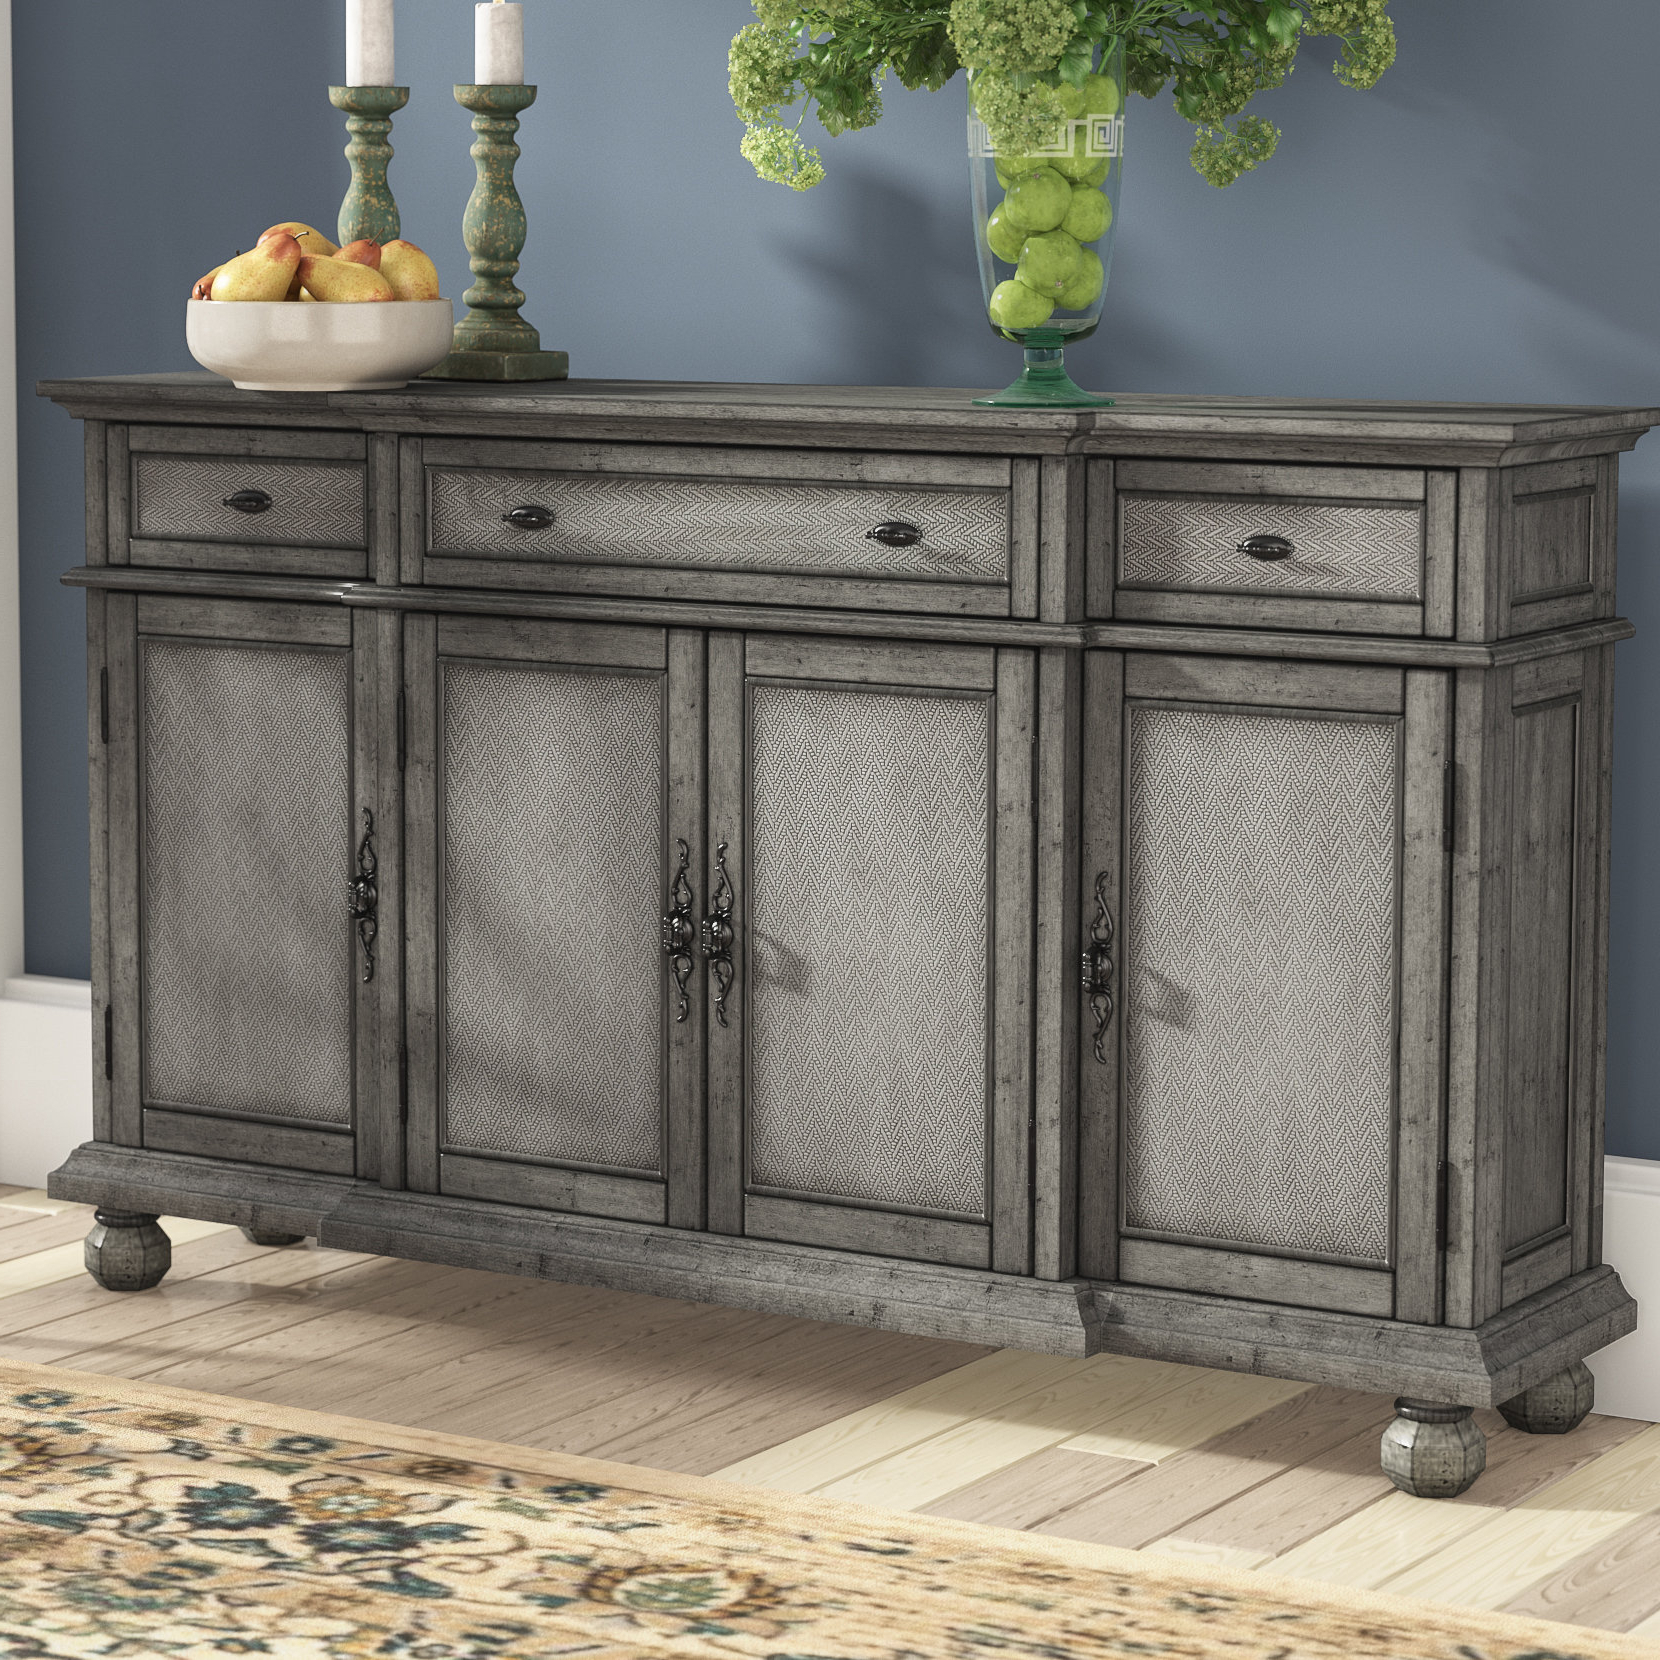 Giulia 3 Drawer Credenzas Regarding Fashionable Giulia 3 Drawer Credenza (View 8 of 20)